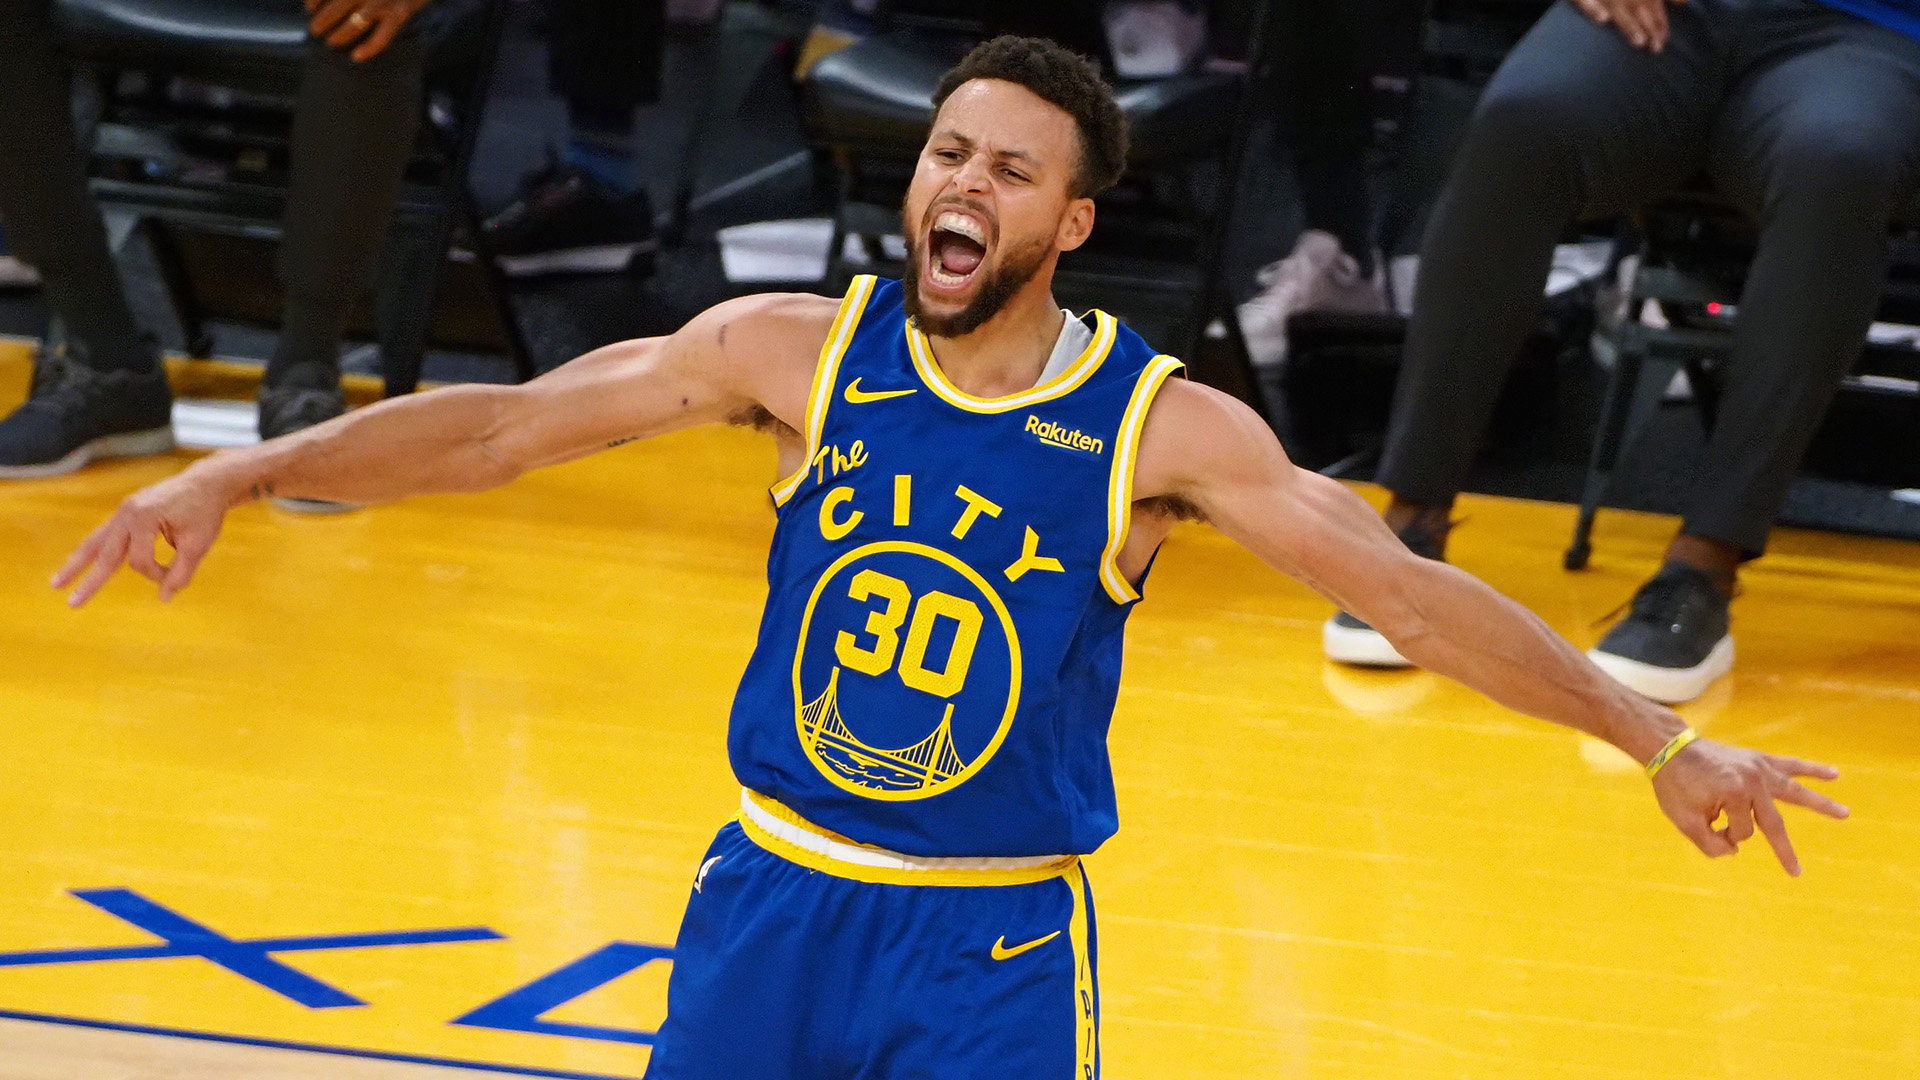 2021-22 NBA fantasy basketball point guard rankings and tiers